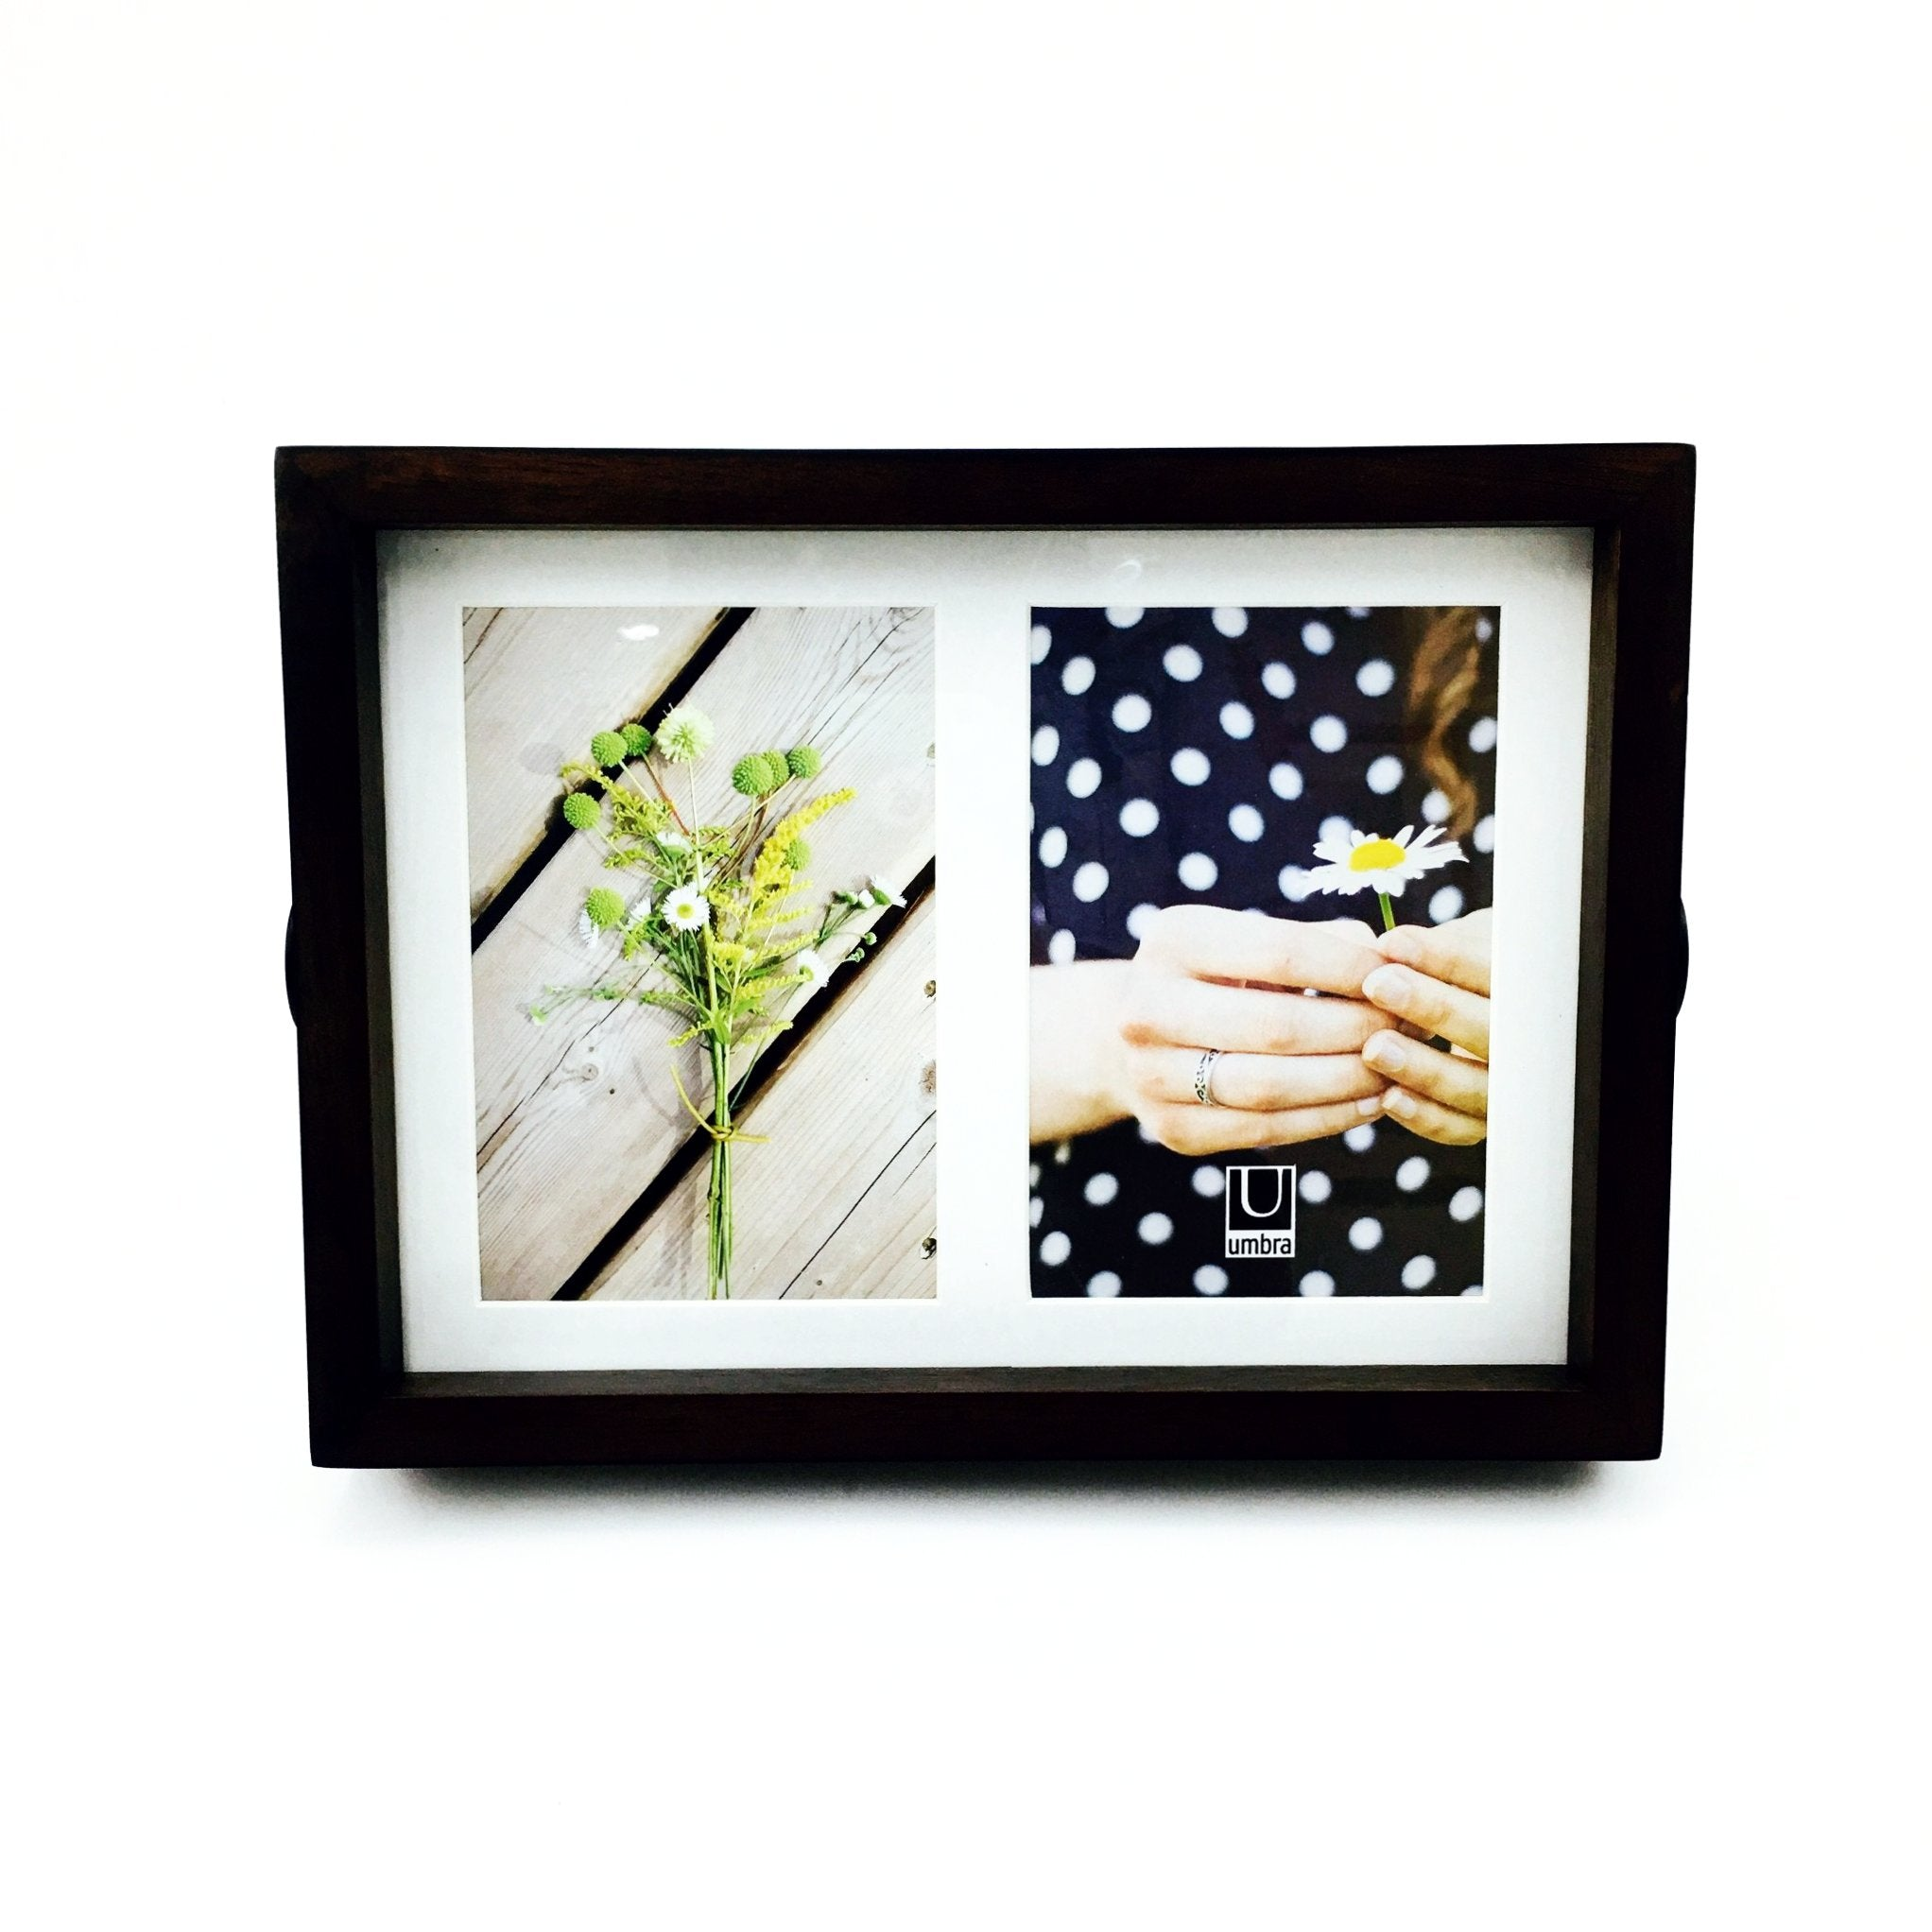 """Axis"" Picture Frames in Aged Walnut by Umbra - Multi - Holds Two 4"" x 6"" Photos by Umbra - K. A. Artist Shop"